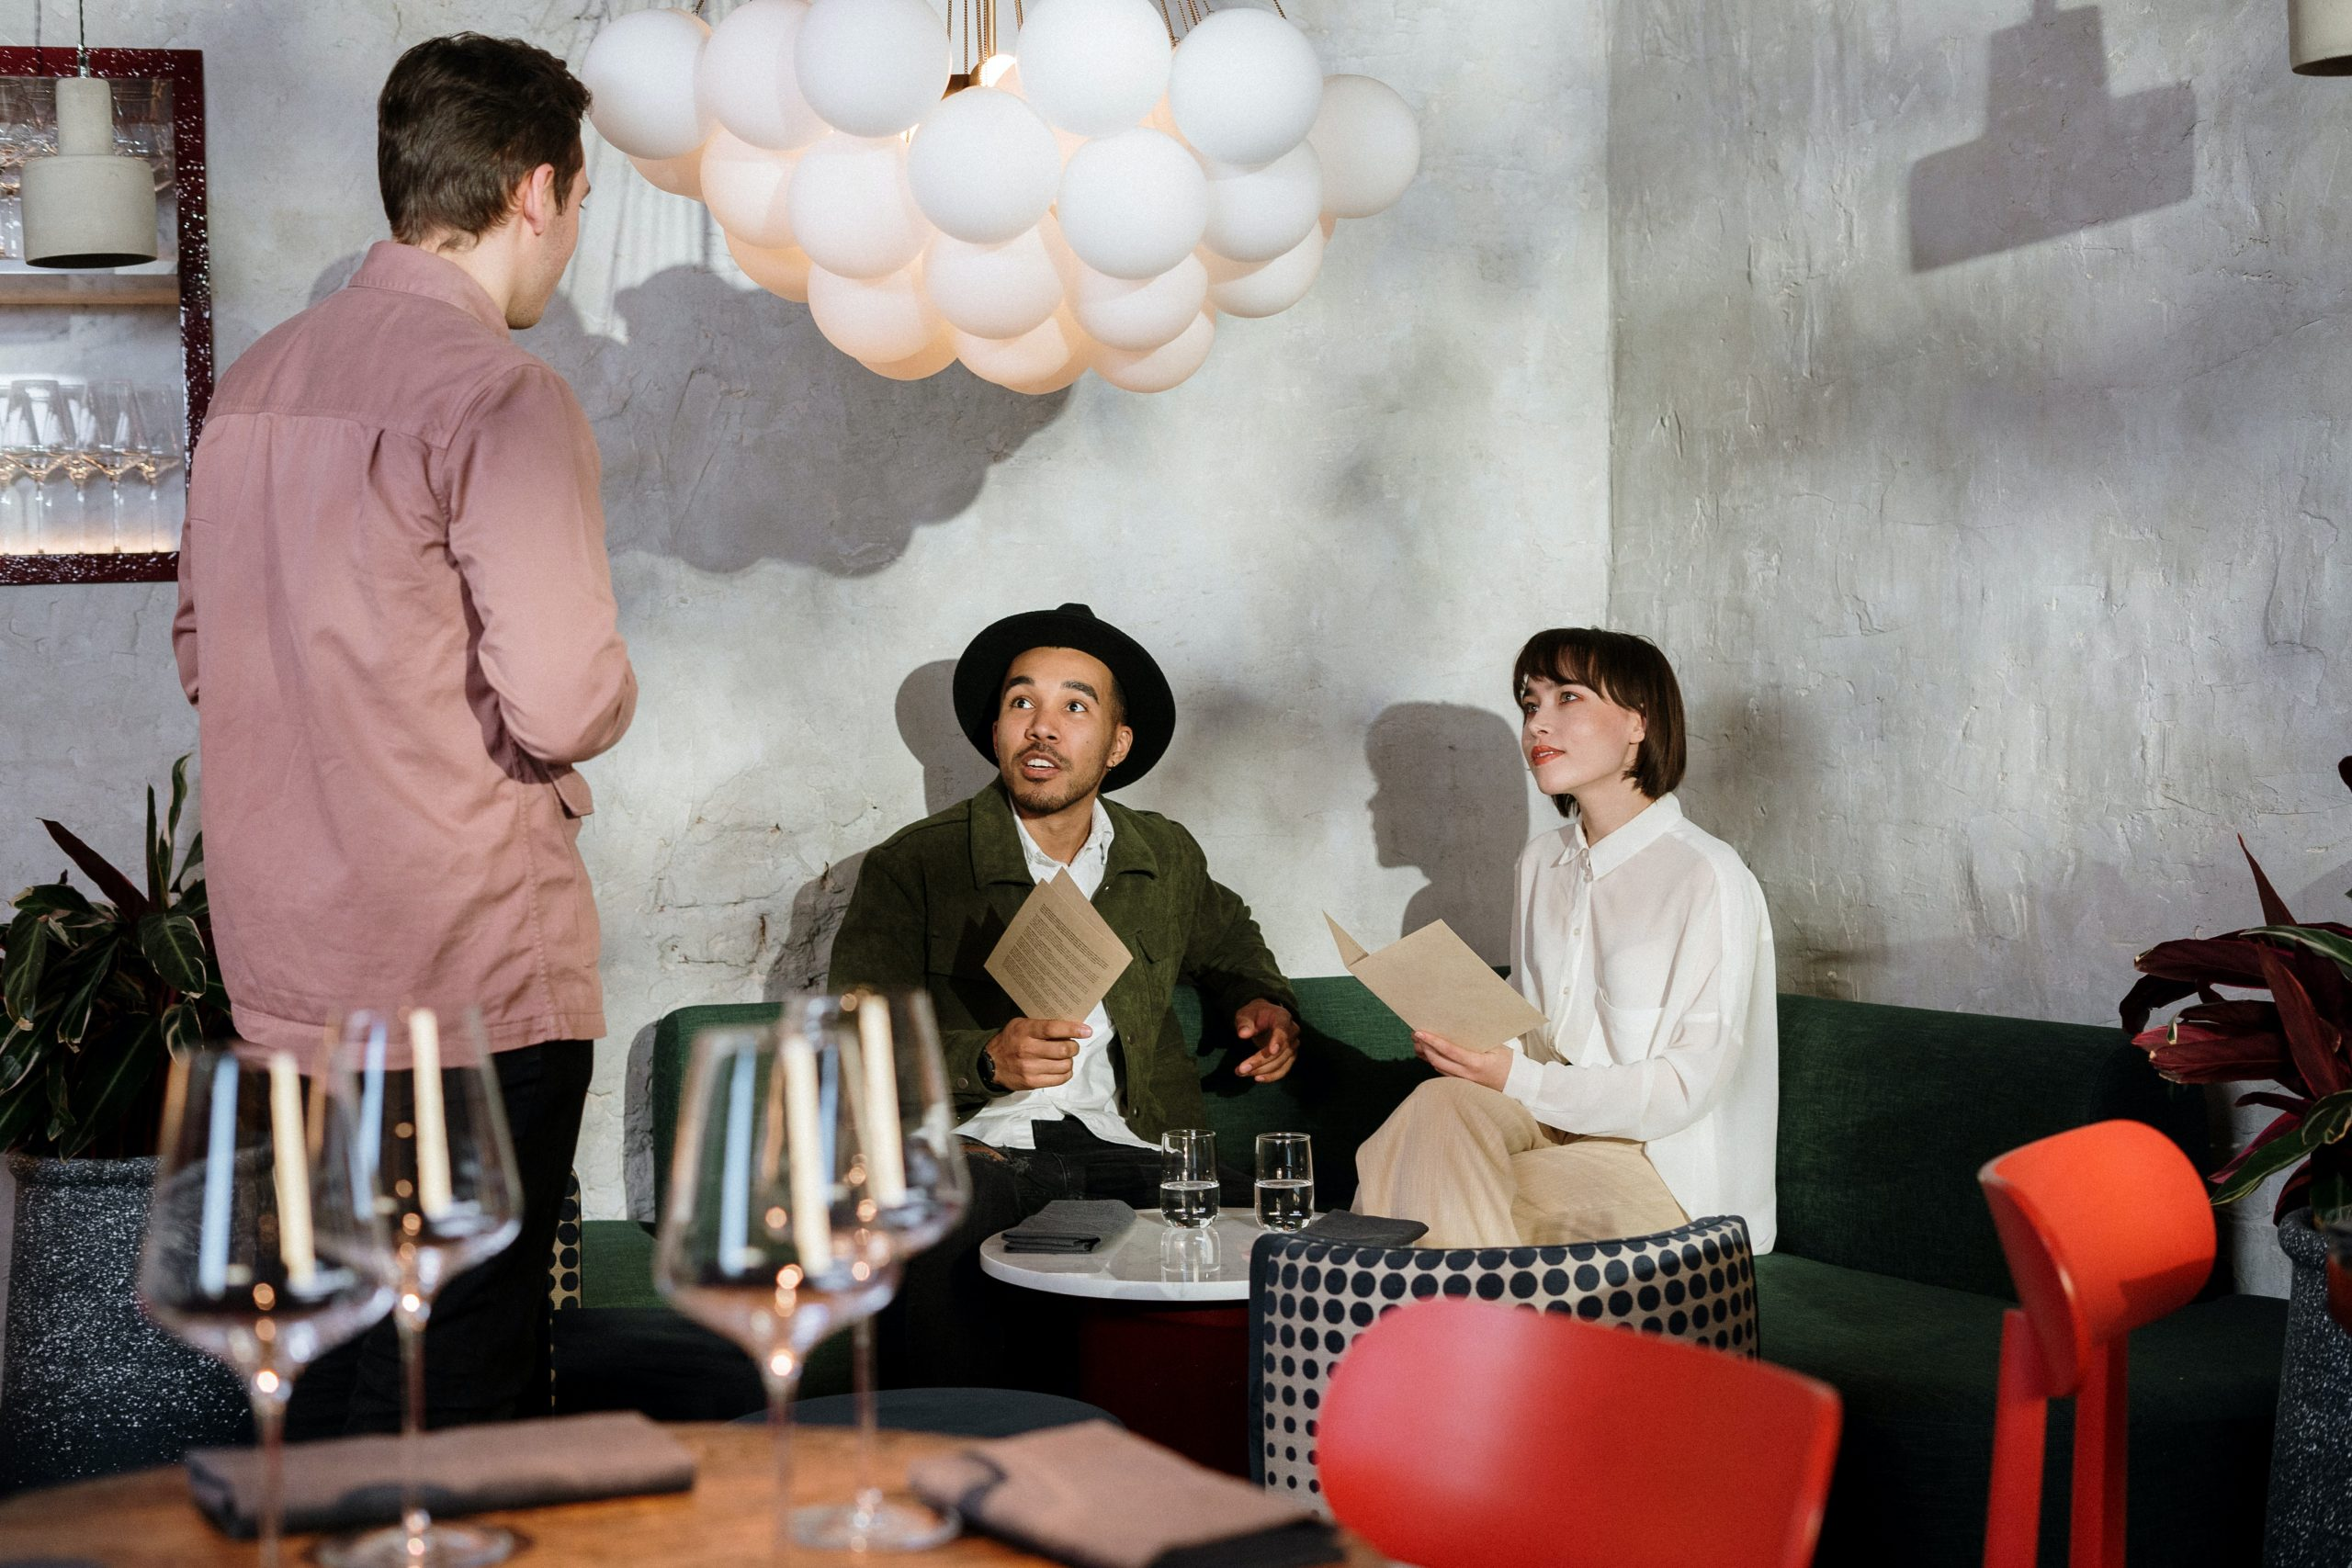 New restaurant concepts like the one photographed where a waiter is speaking to a couple with menus in their hands, is one facet of the latest restaurant industry news and trends.